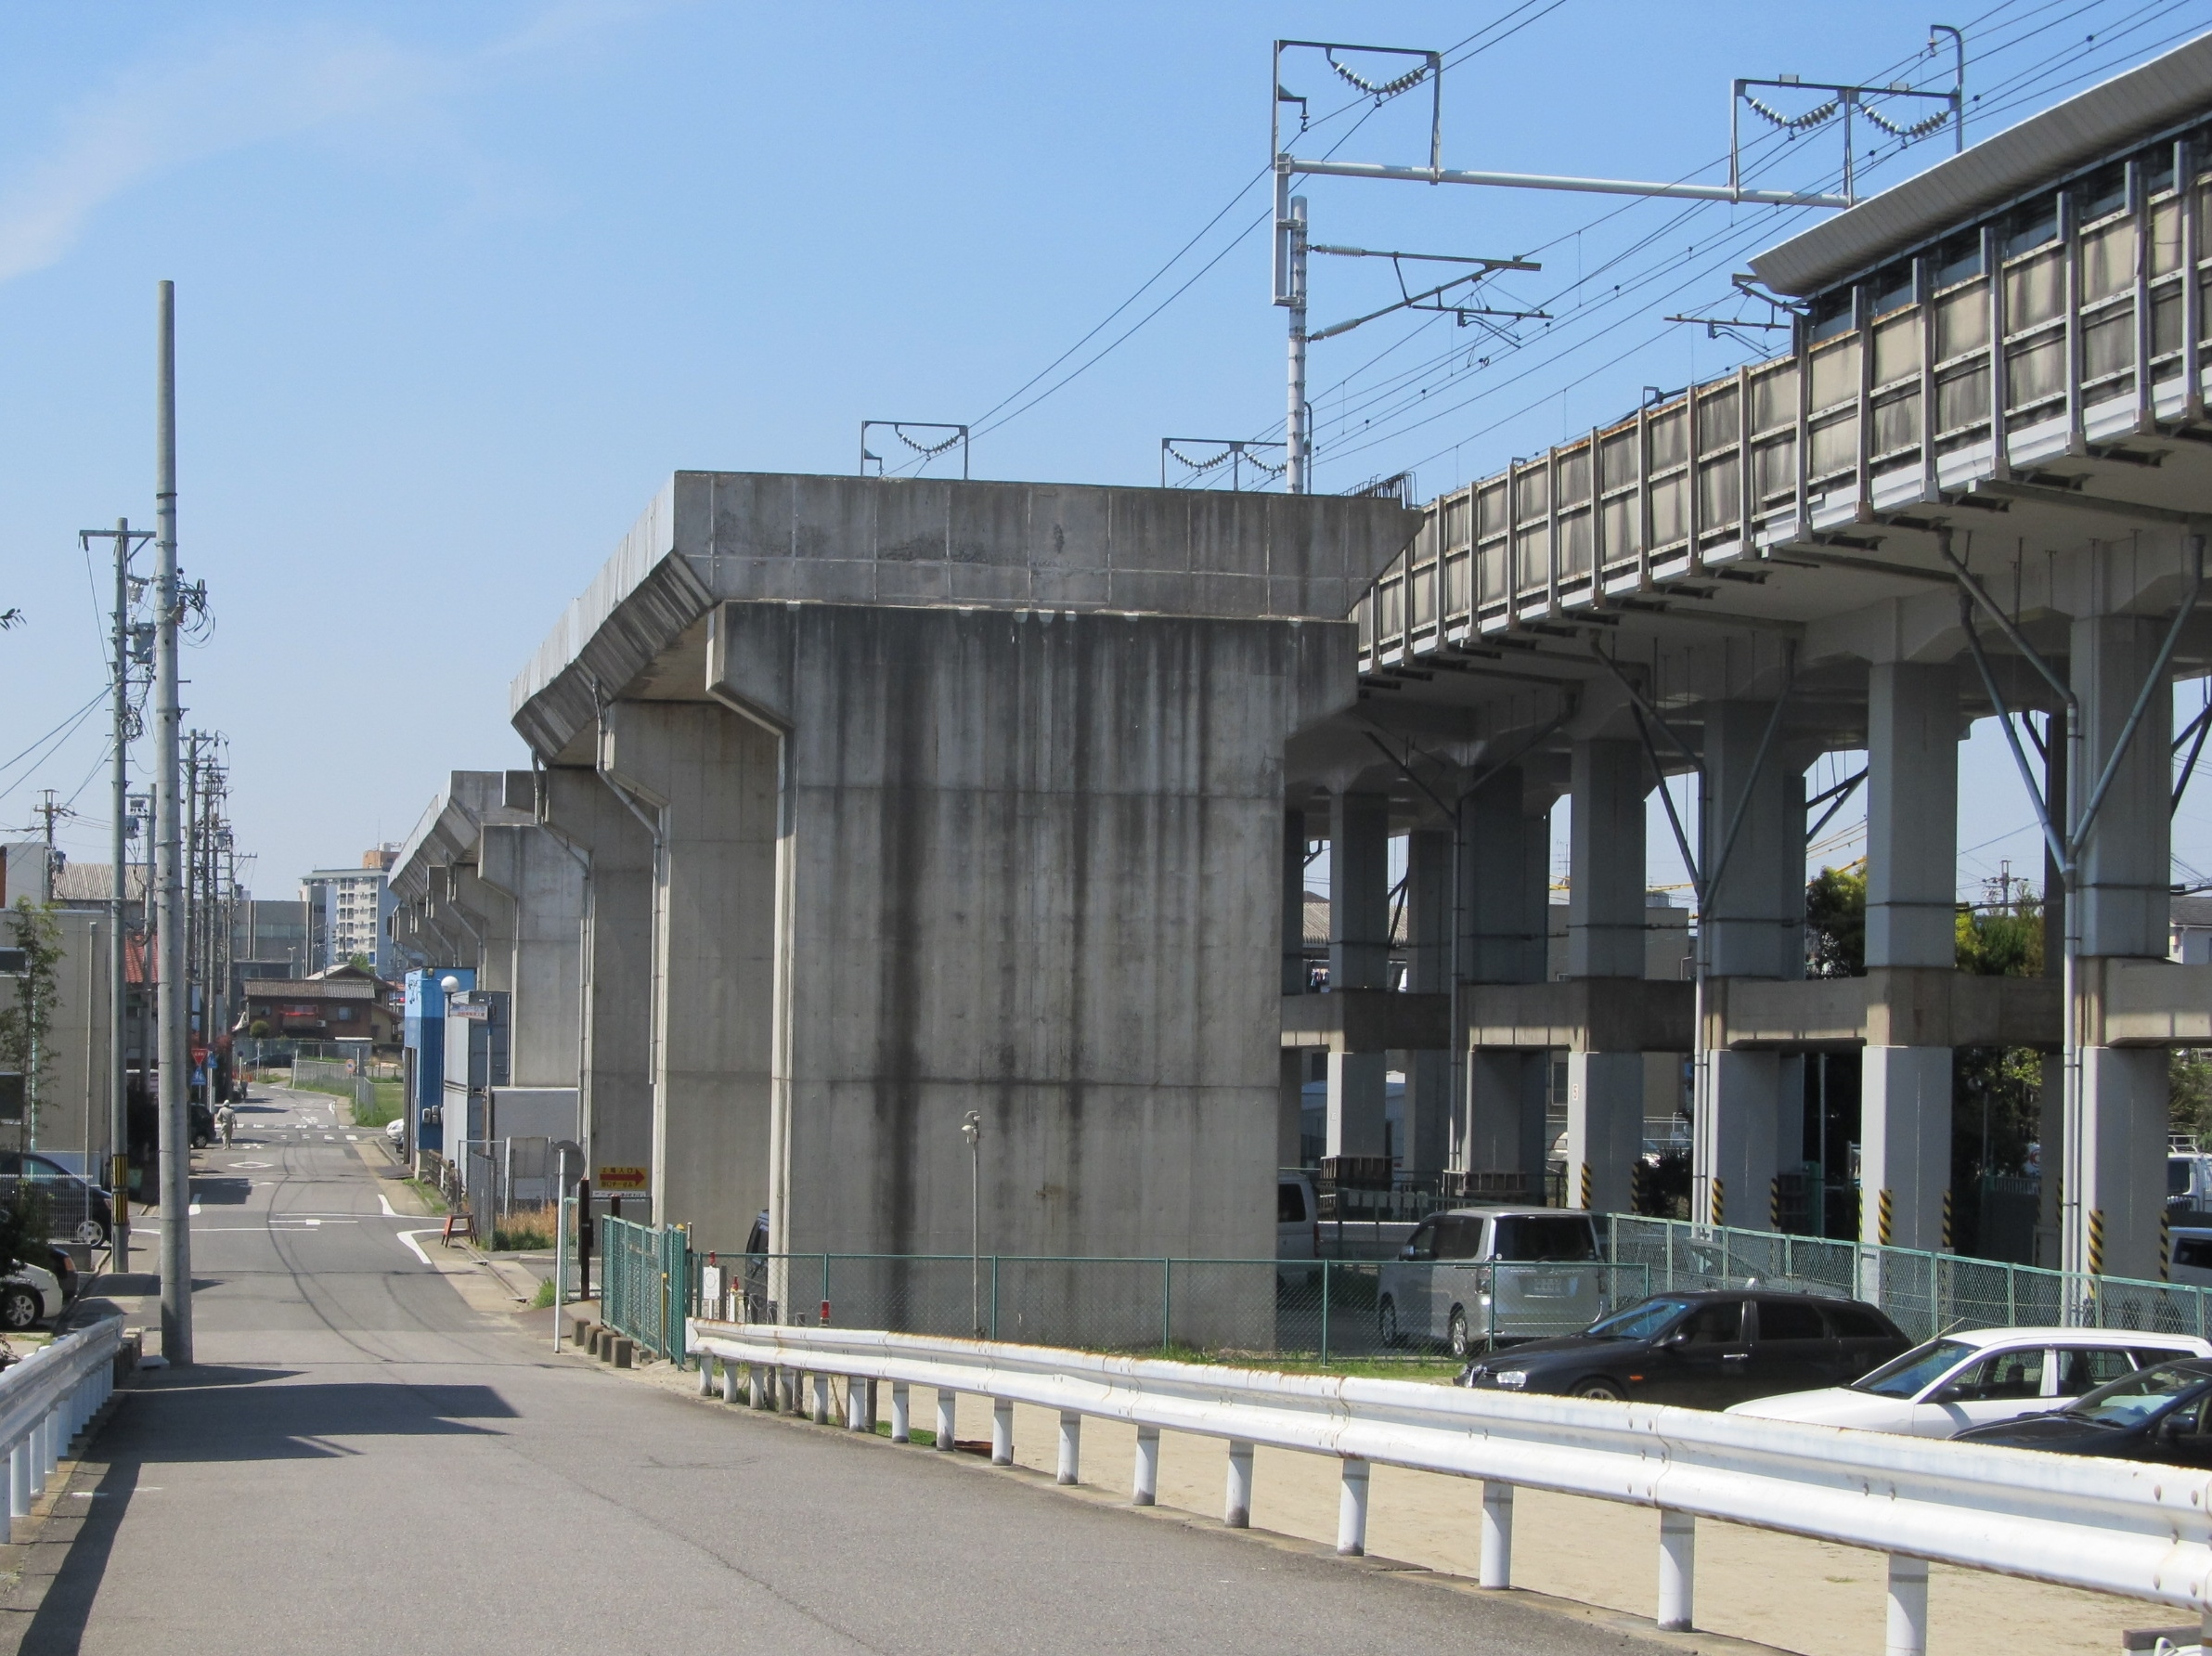 https://upload.wikimedia.org/wikipedia/commons/3/3e/Railway_viaduct_of_Nanp%C5%8D_Freight_Line_6.JPG